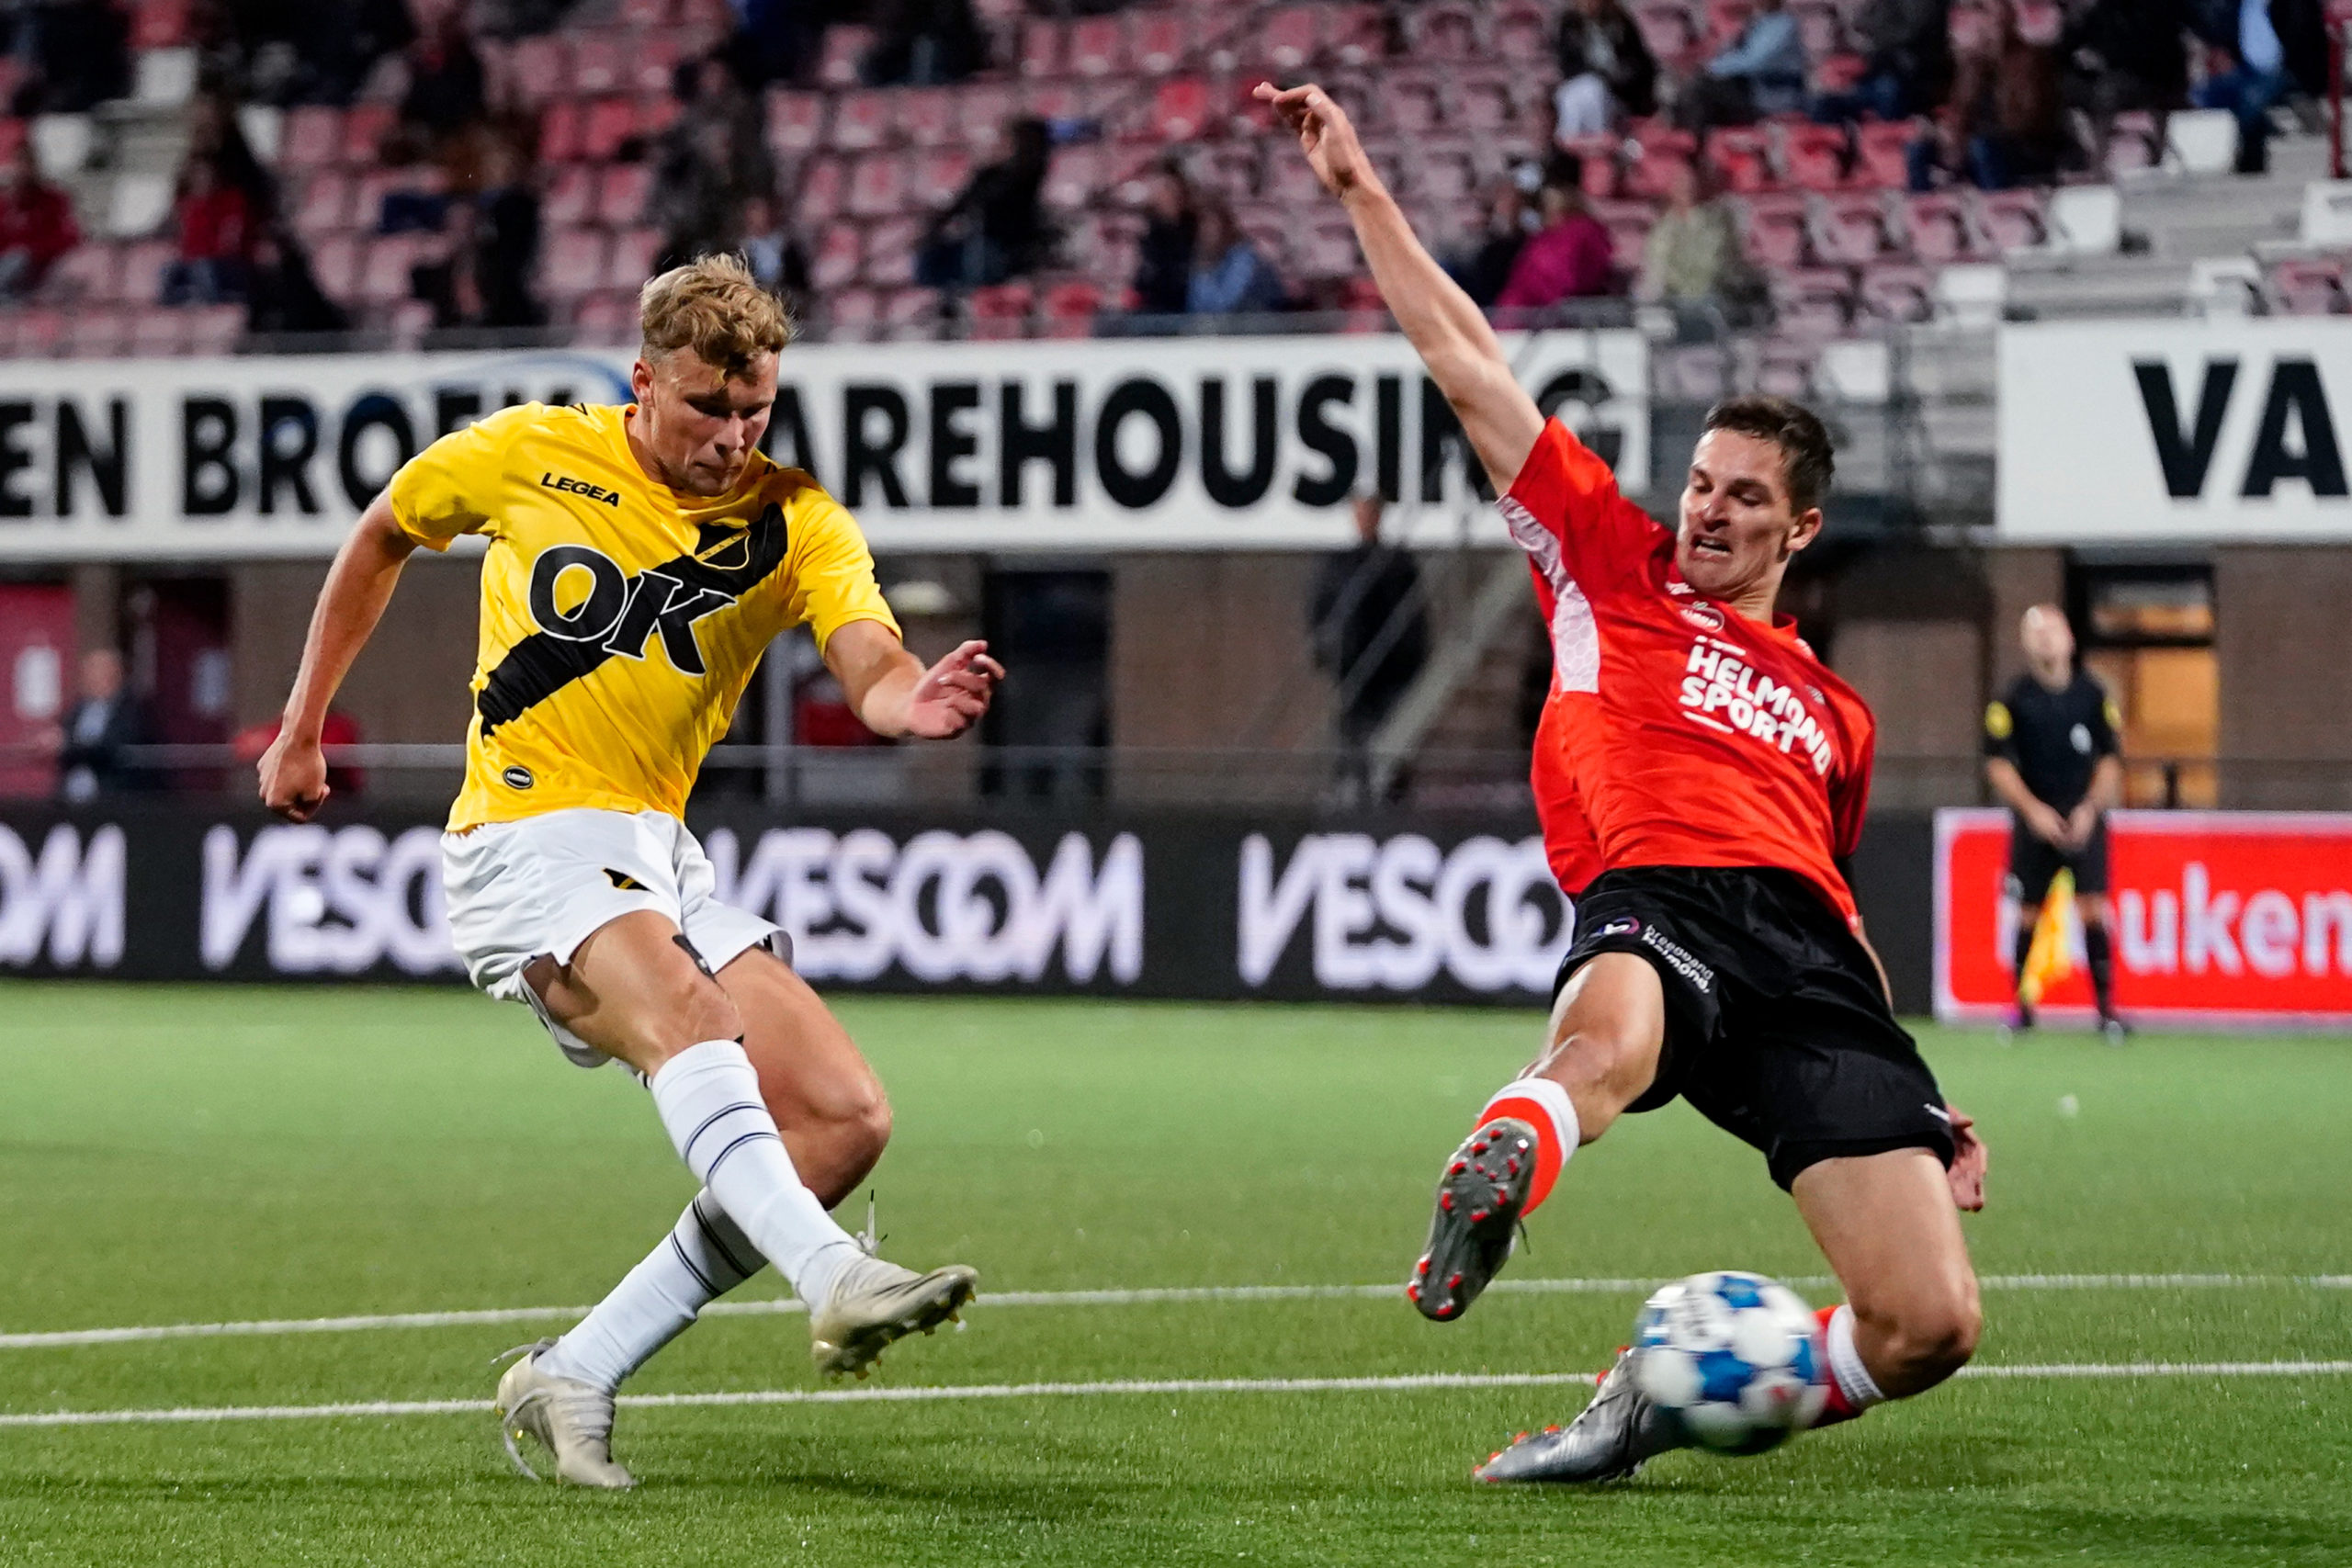 Young Dutch forward linked with Udinese; Celtic should've been all over this - opinion